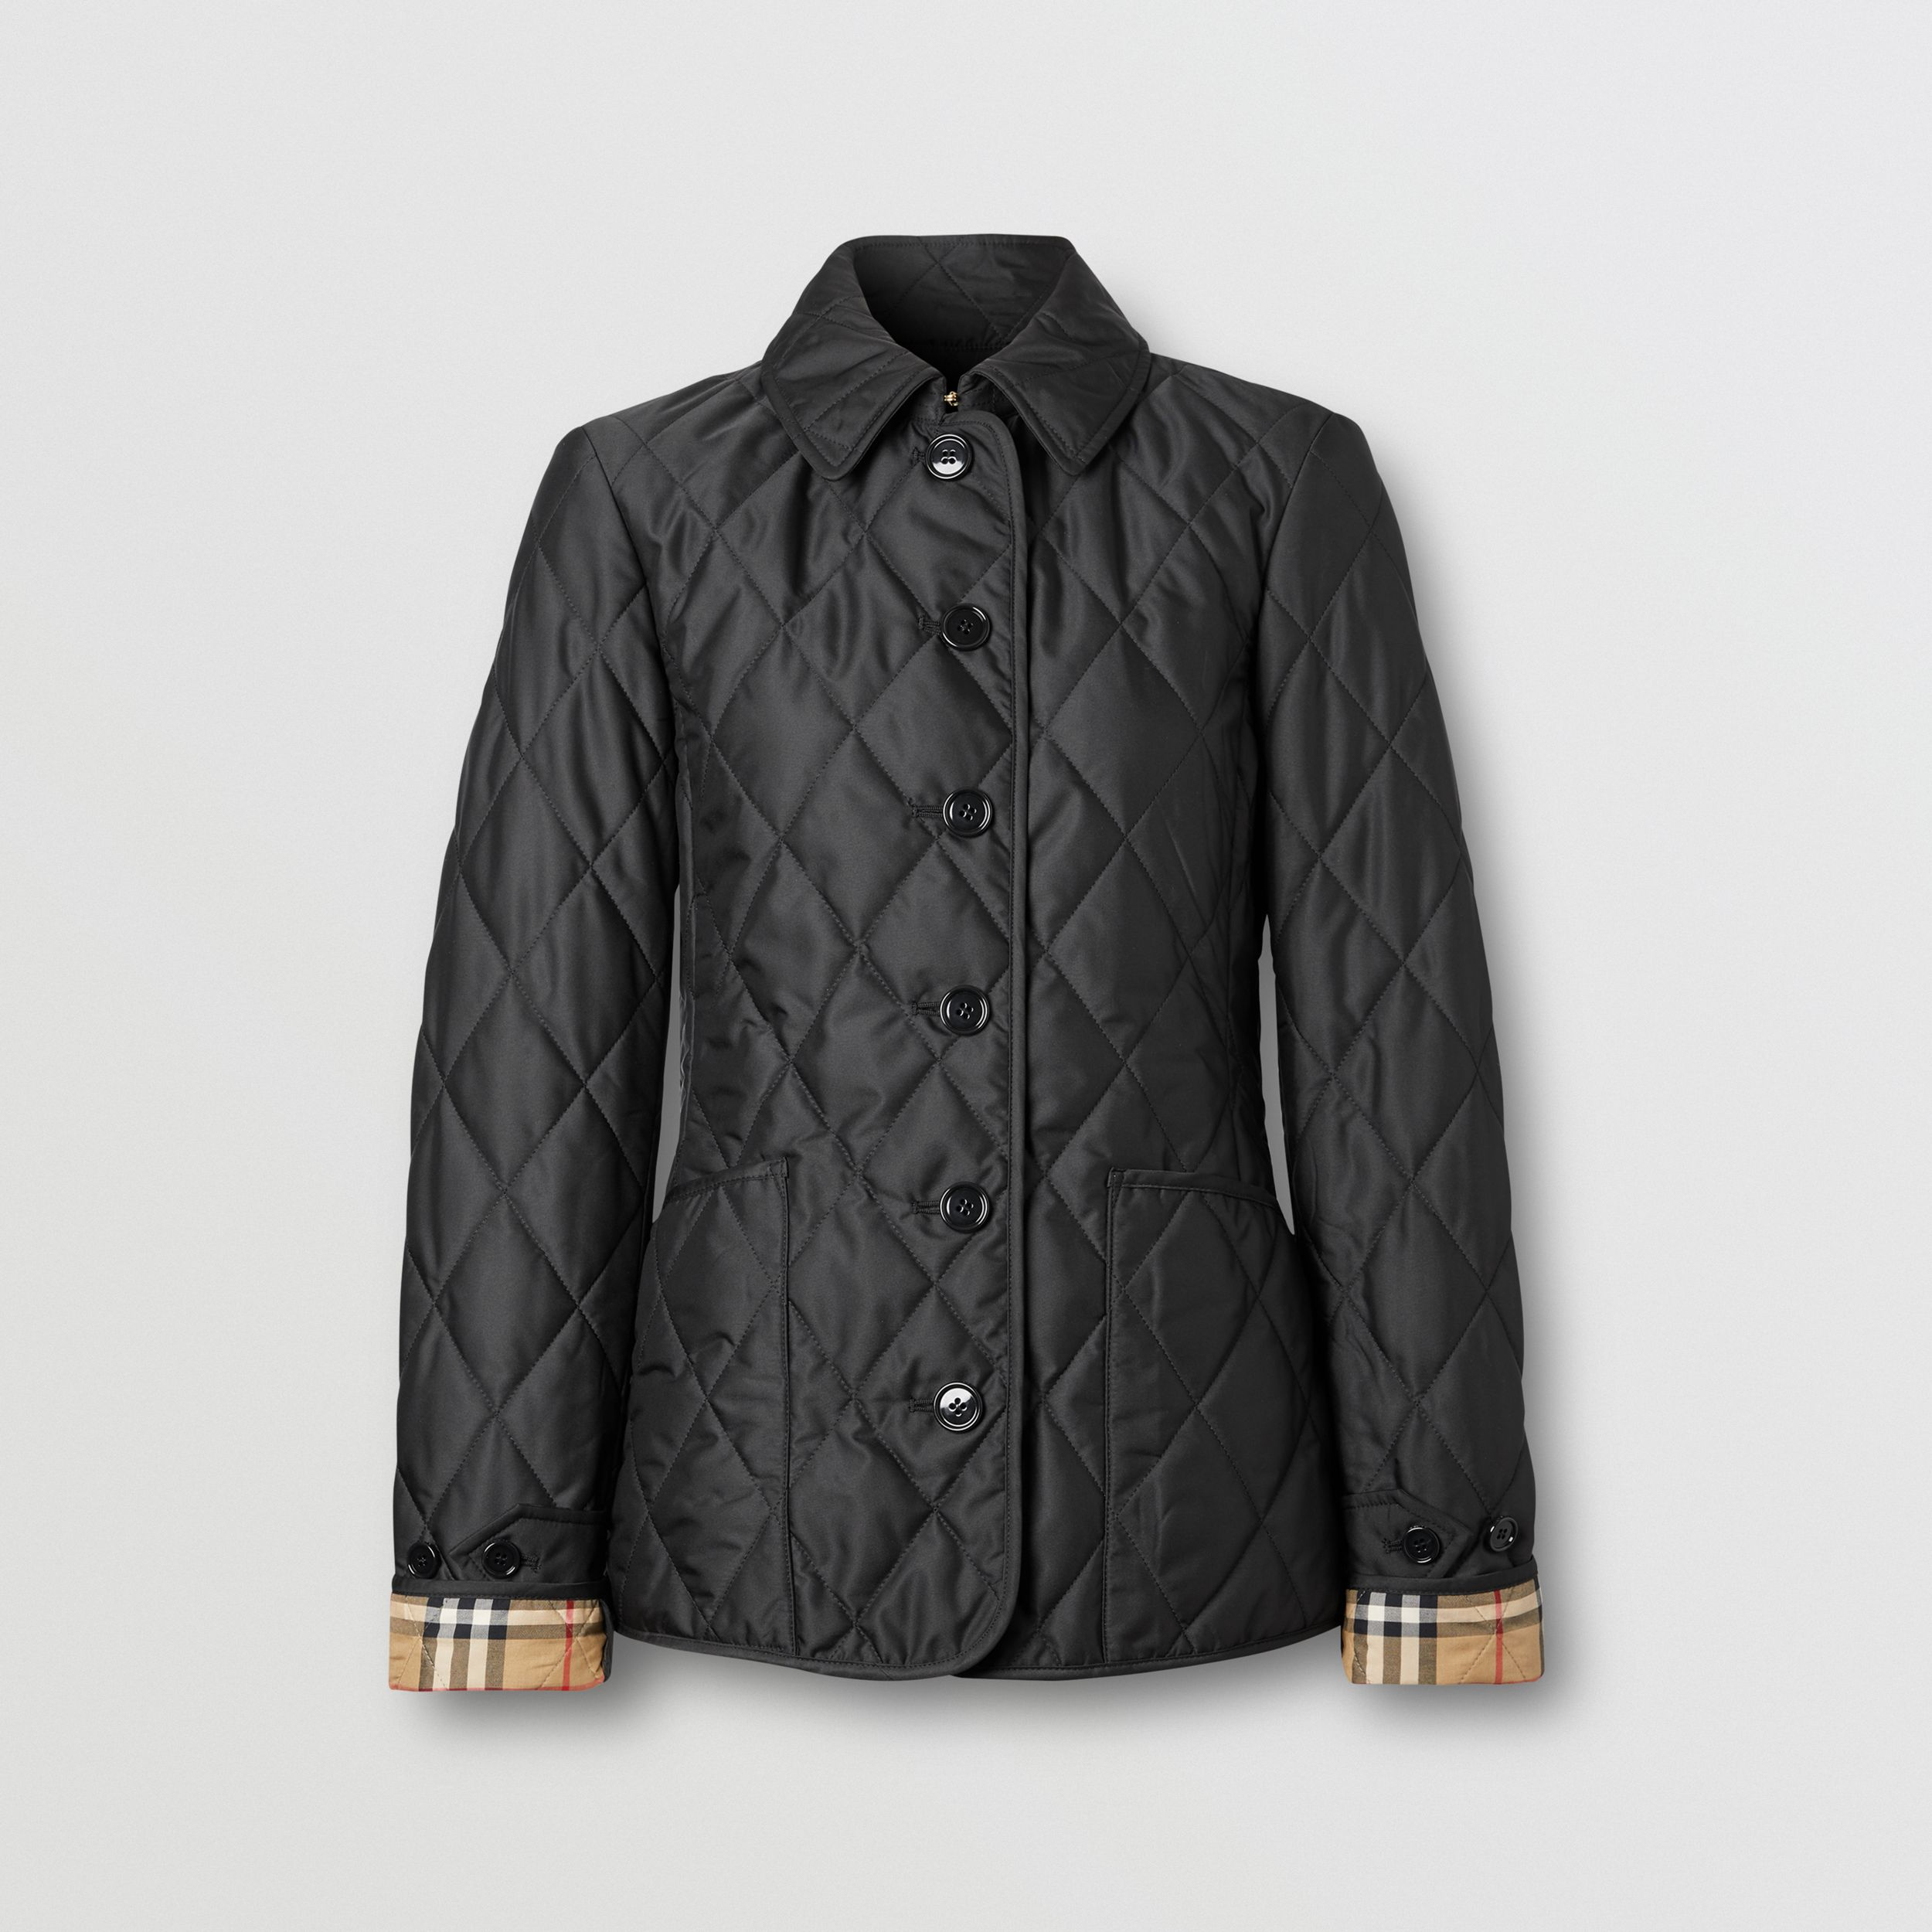 Diamond Quilted Thermoregulated Jacket in Black | Burberry - 4